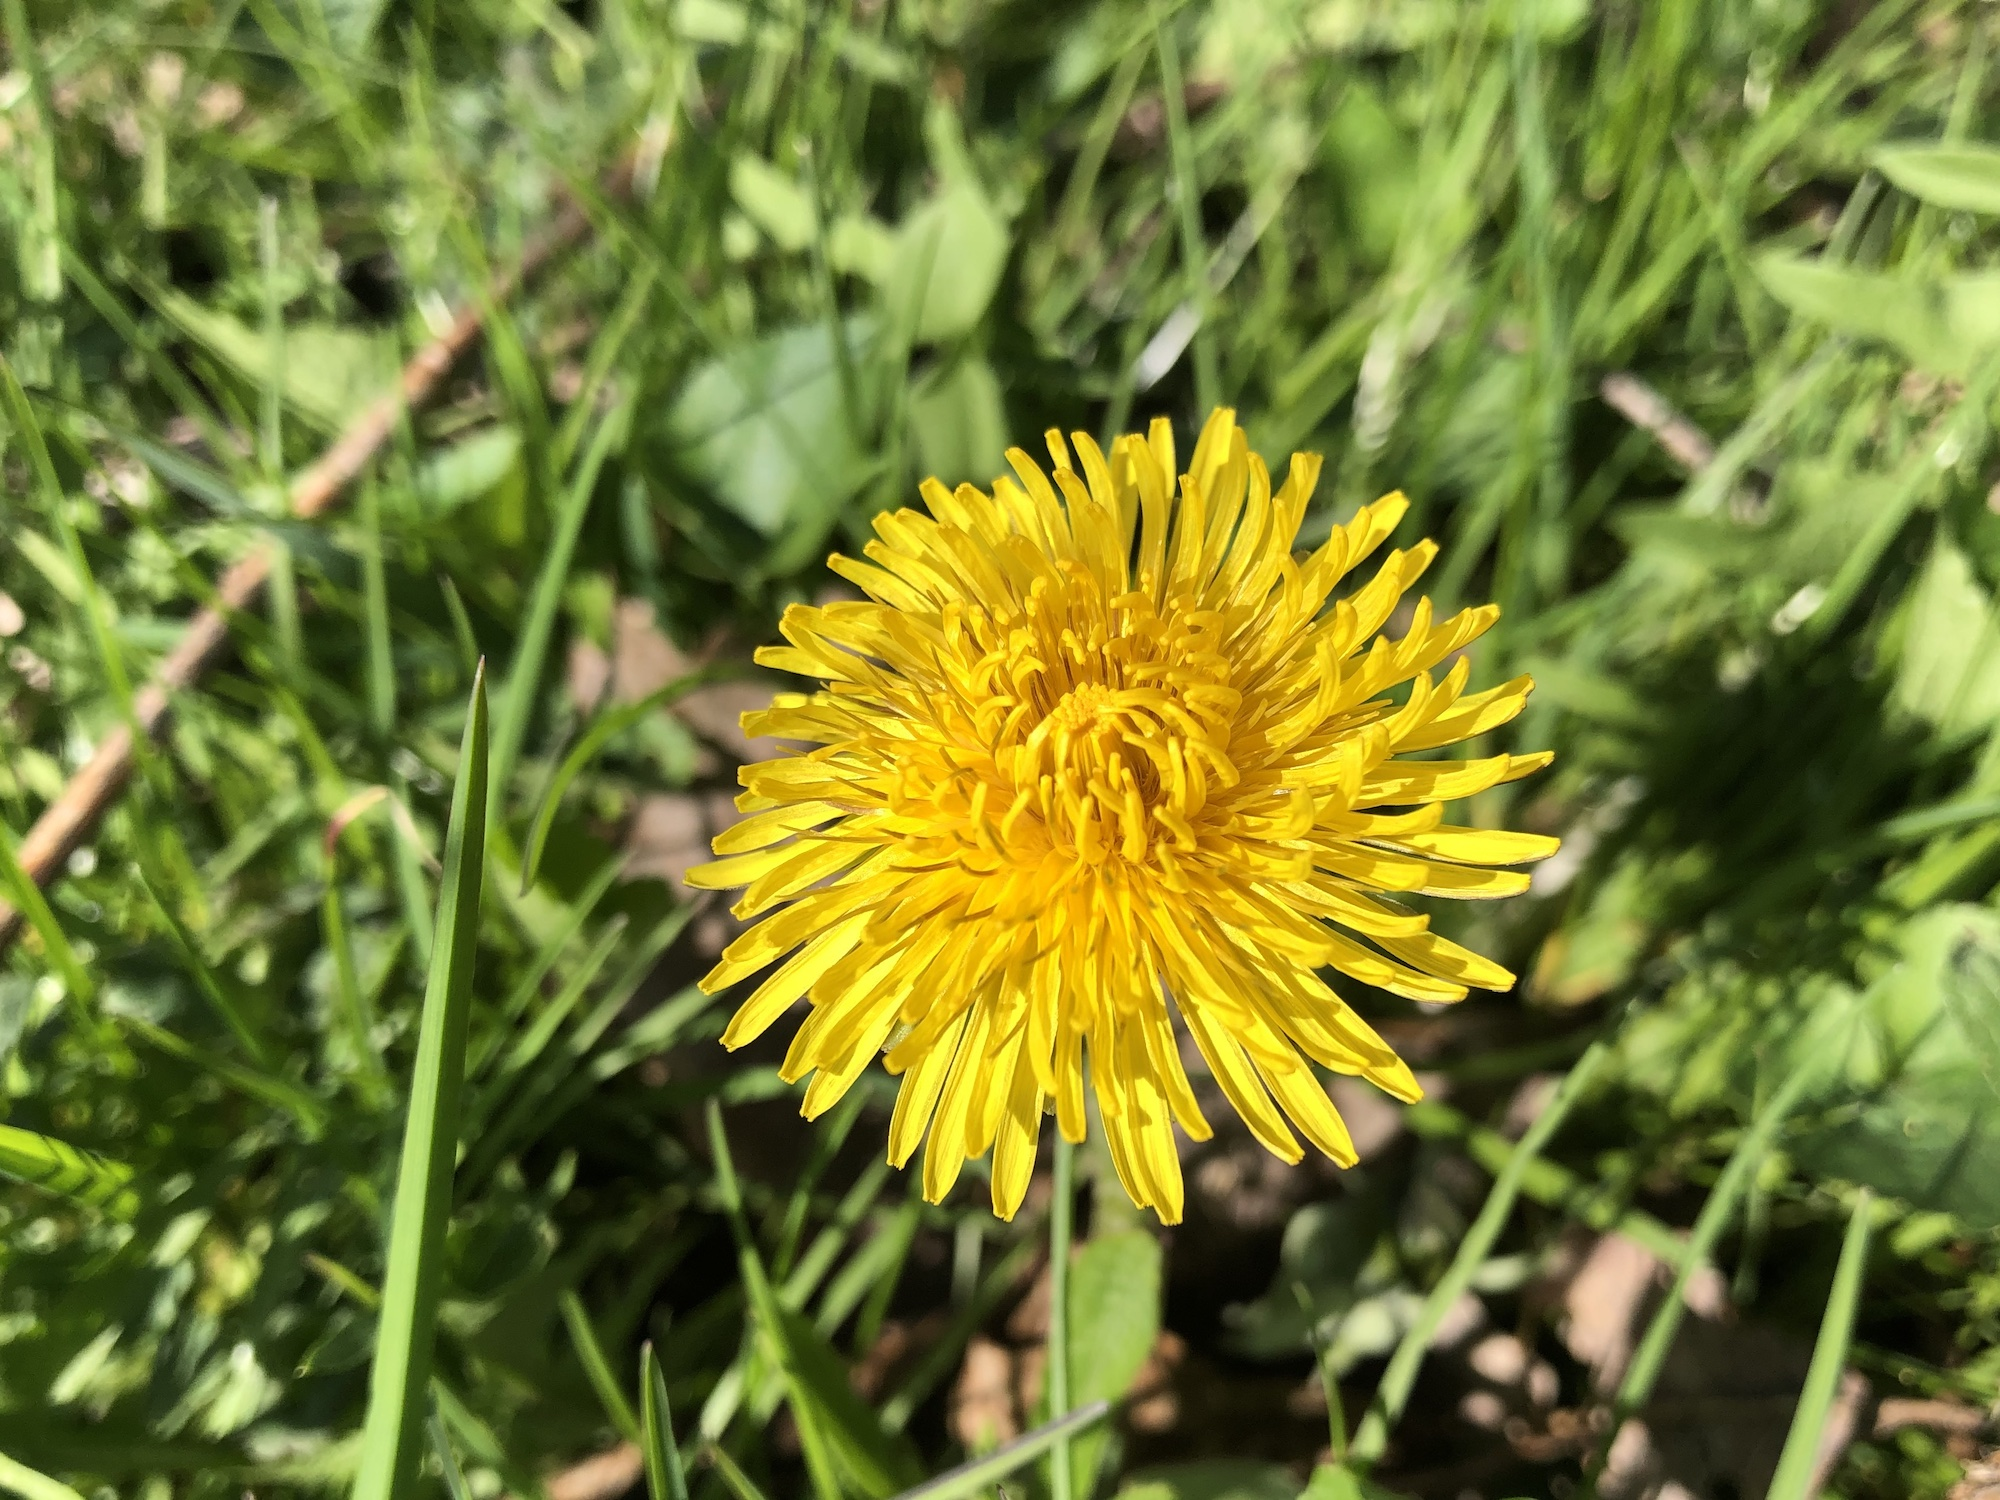 Dandelion by Stevens Pond in Madison, Wisconsin on April 30, 2020.